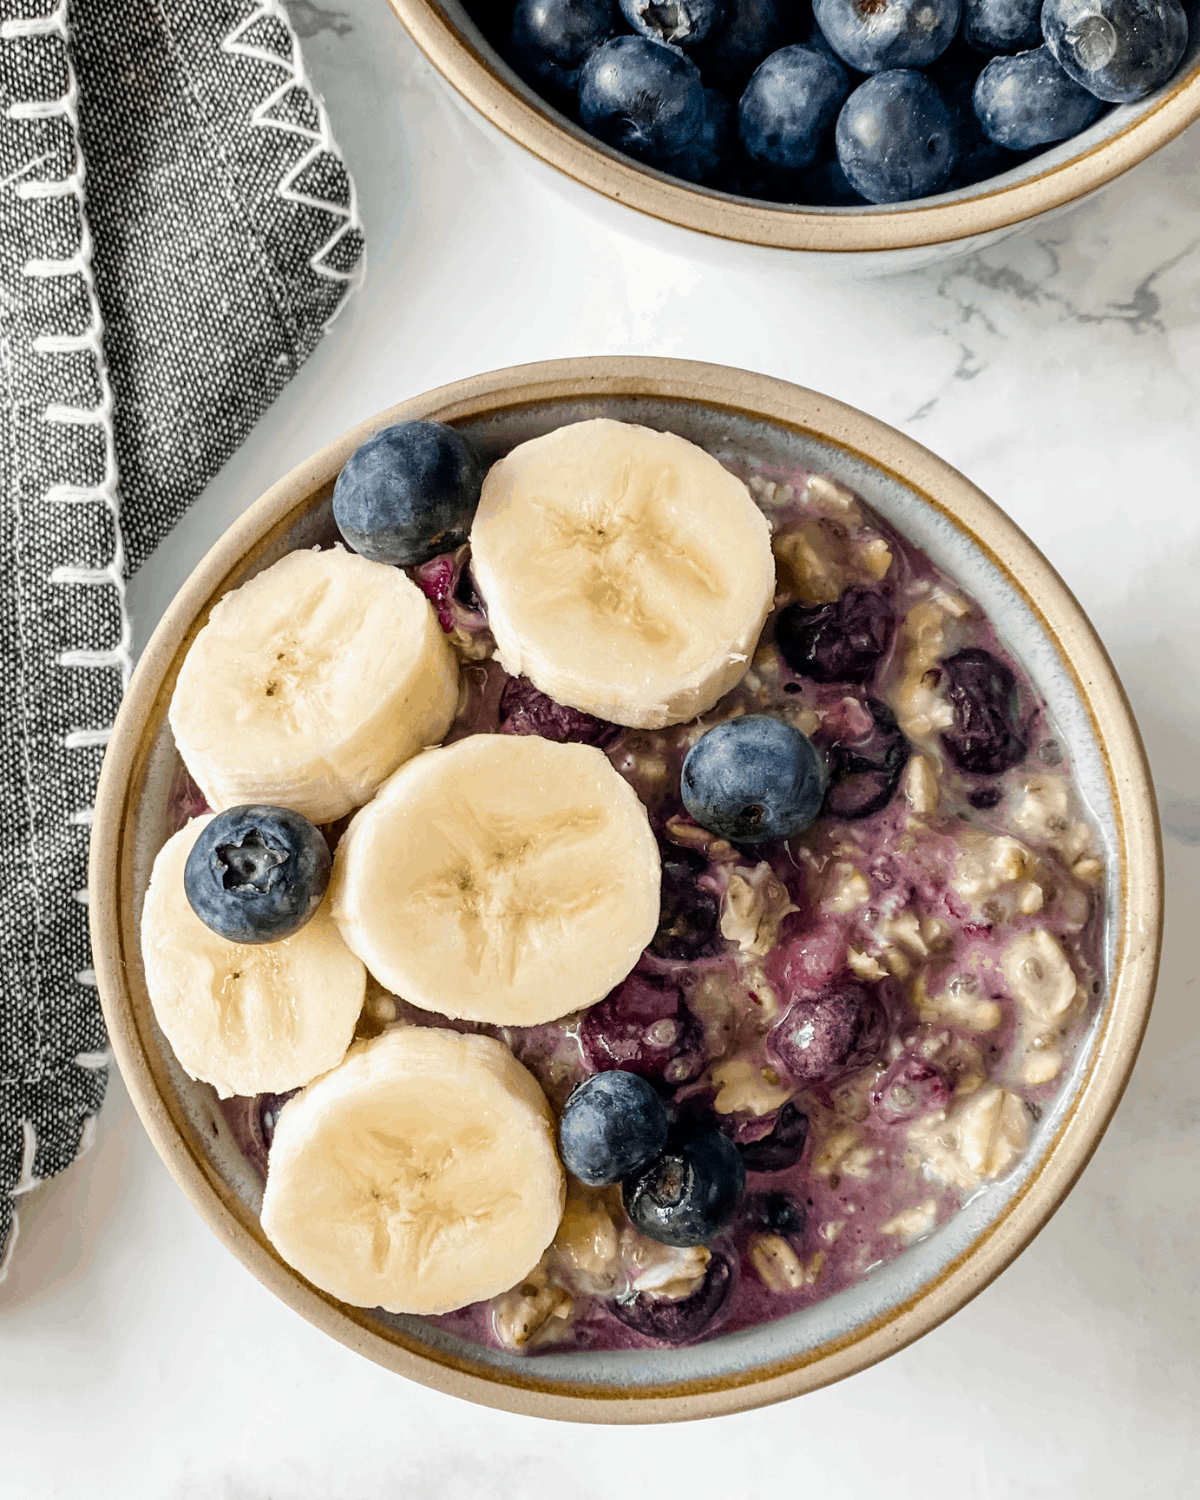 overnight oats recipe with blueberry and bananas